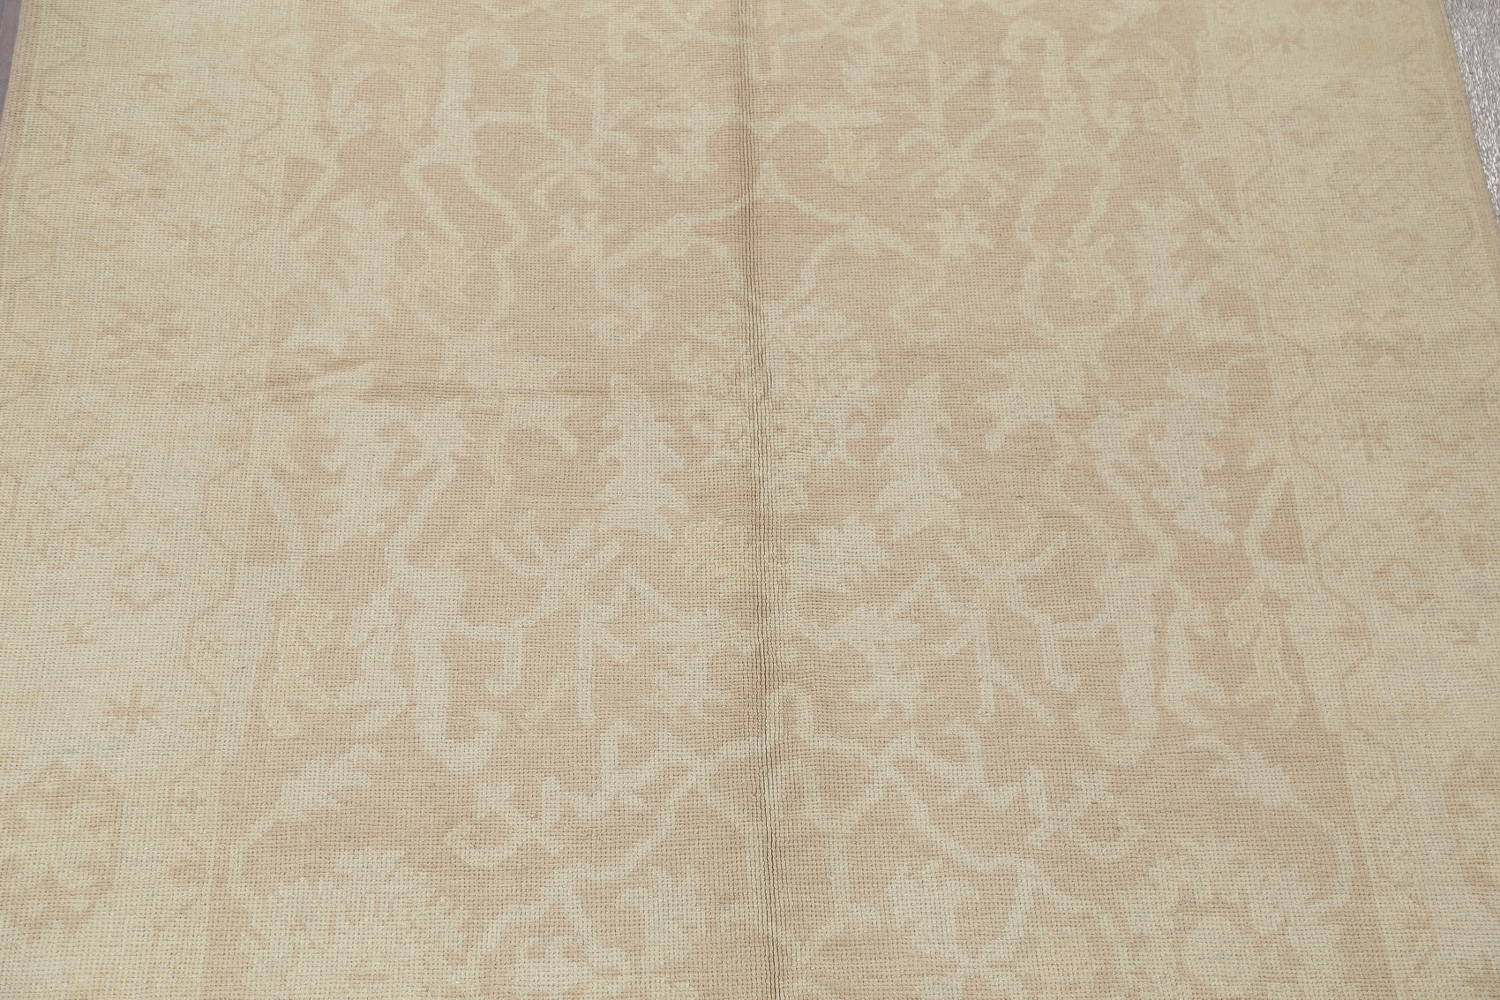 Vegetable Dye Muted Gold Oushak Turkish Hand-Knotted Runner Rug 7x16 image 4